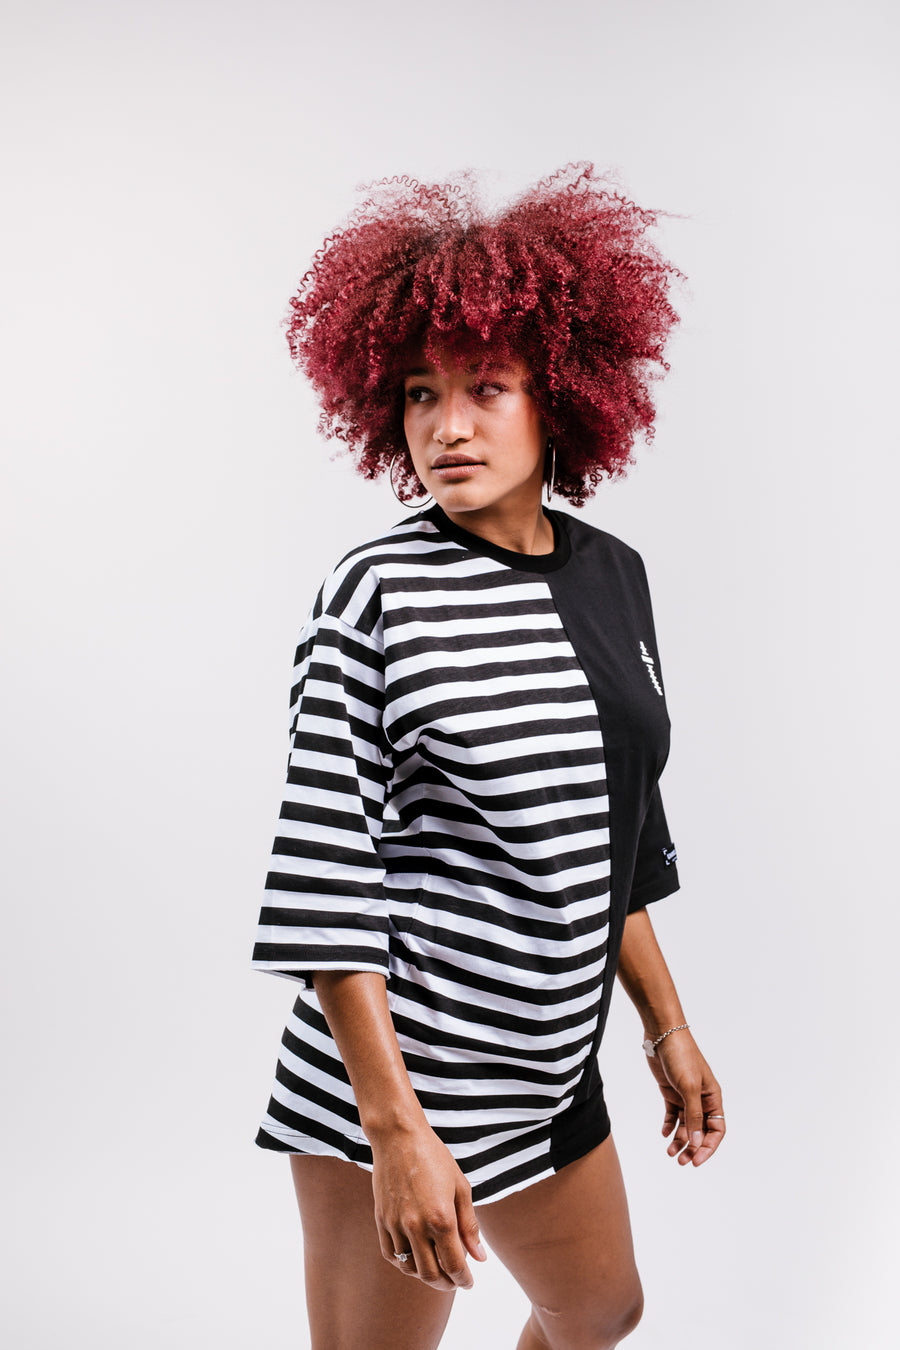 WOMEN'S OVERSIZE T-SHIRT COMBINED STRIPES WITH PLAIN